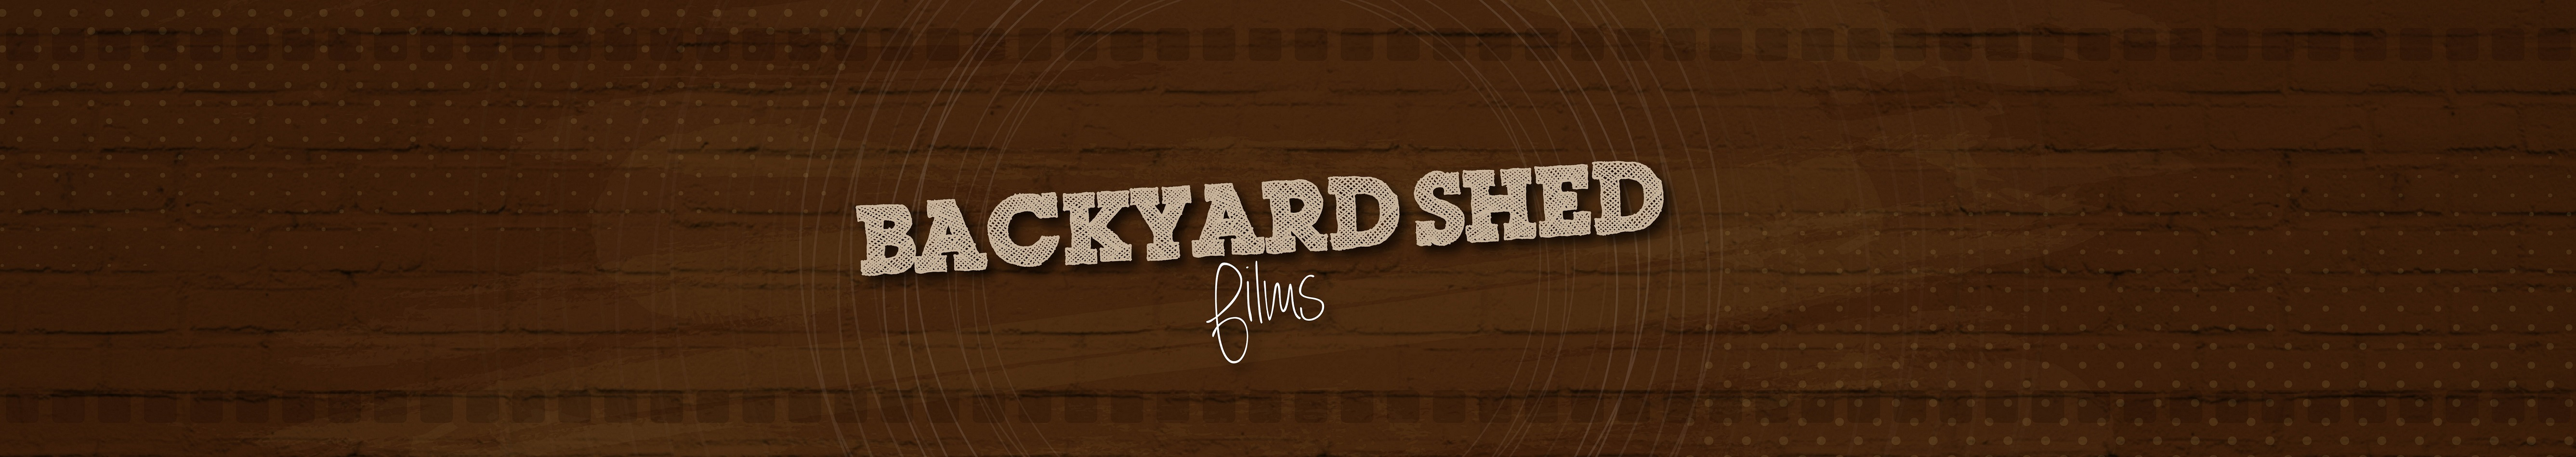 48 Hour Film Project | Backyard Shed Films